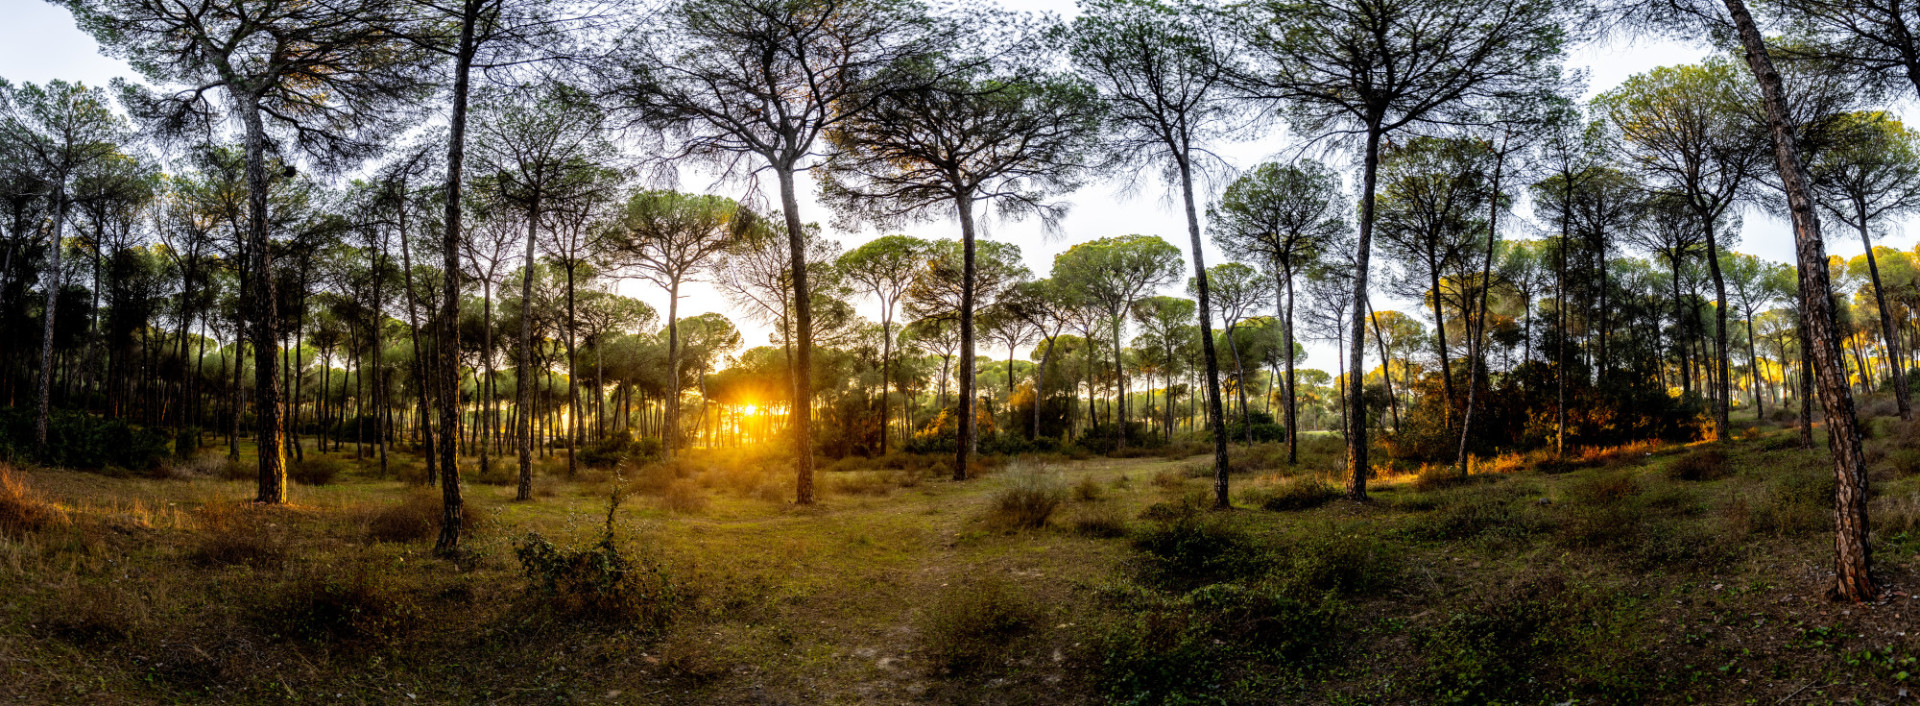 Andalusia forest landscape